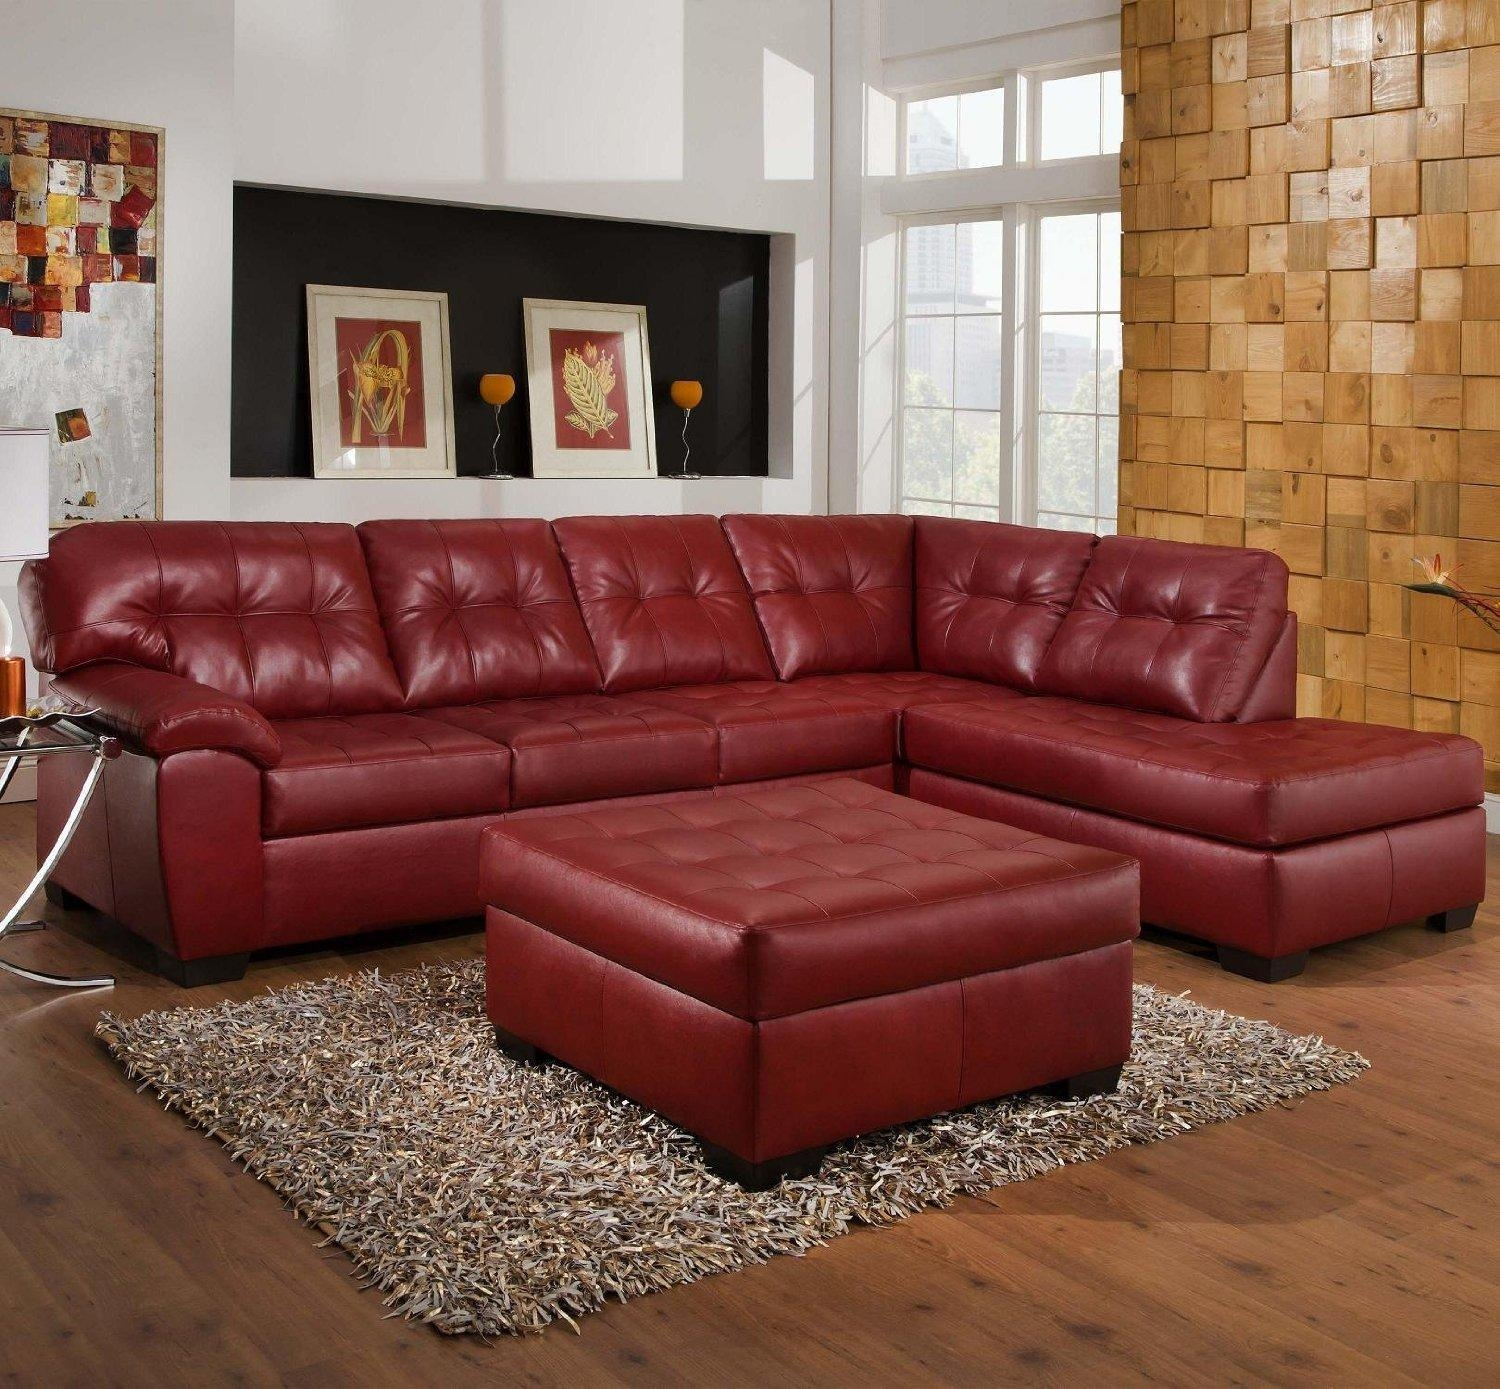 Red Leather Couches Decor : Stylish Red Leather Couches – Home Inside Dark Red Leather Sofas (Image 14 of 20)